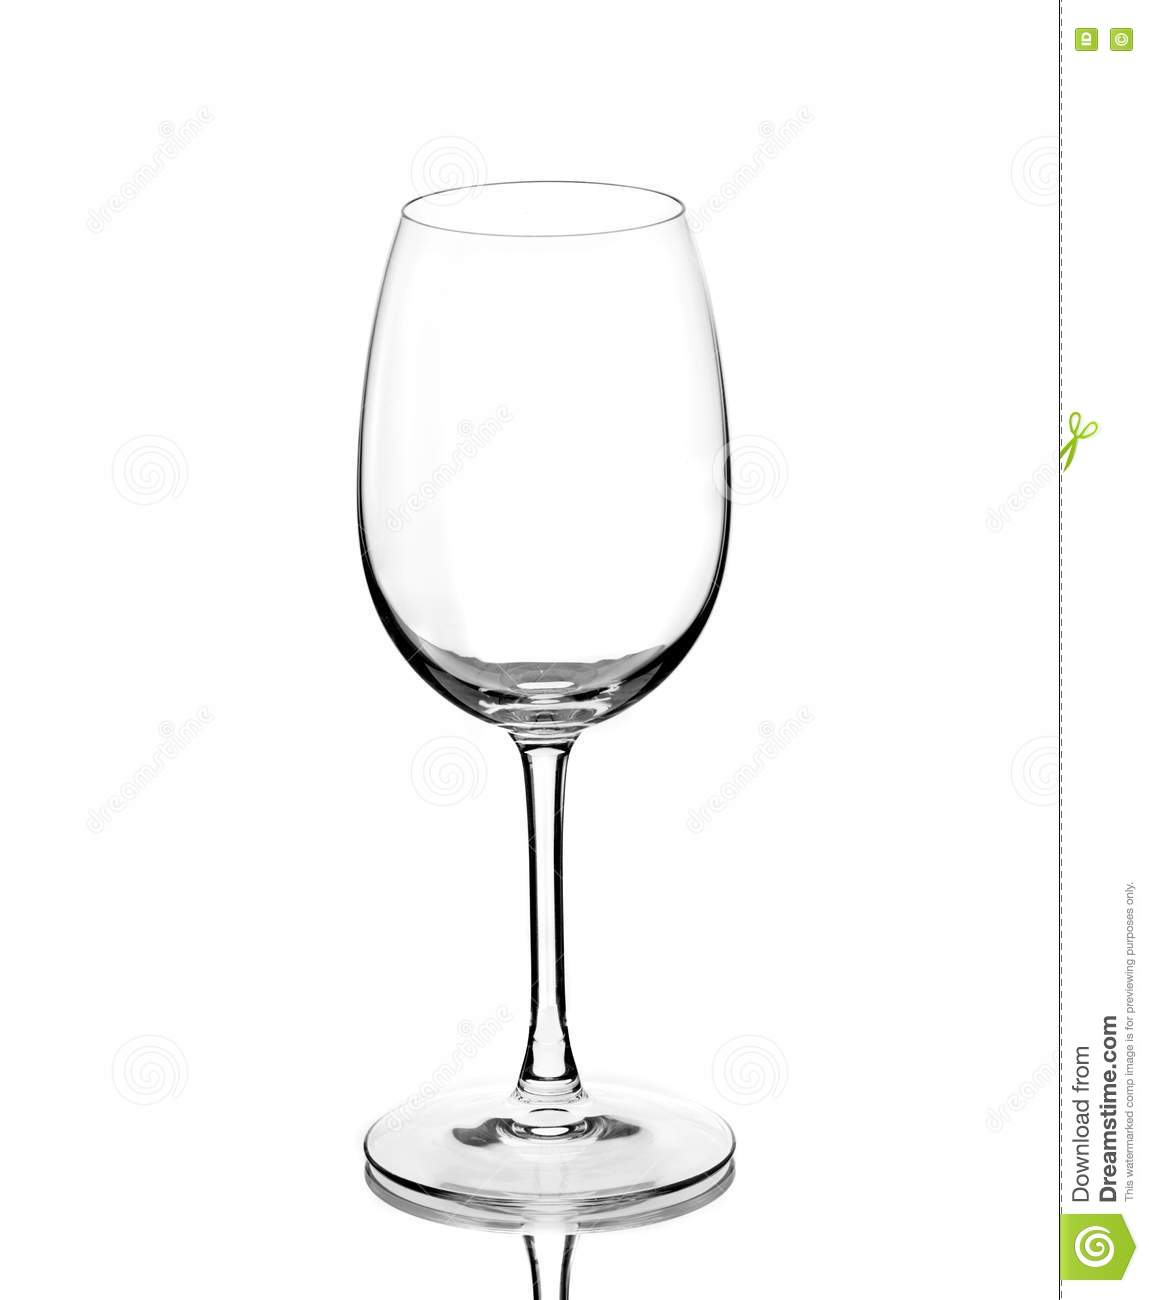 Ransparent Empty Wine Glass Royalty Free Stock Photos